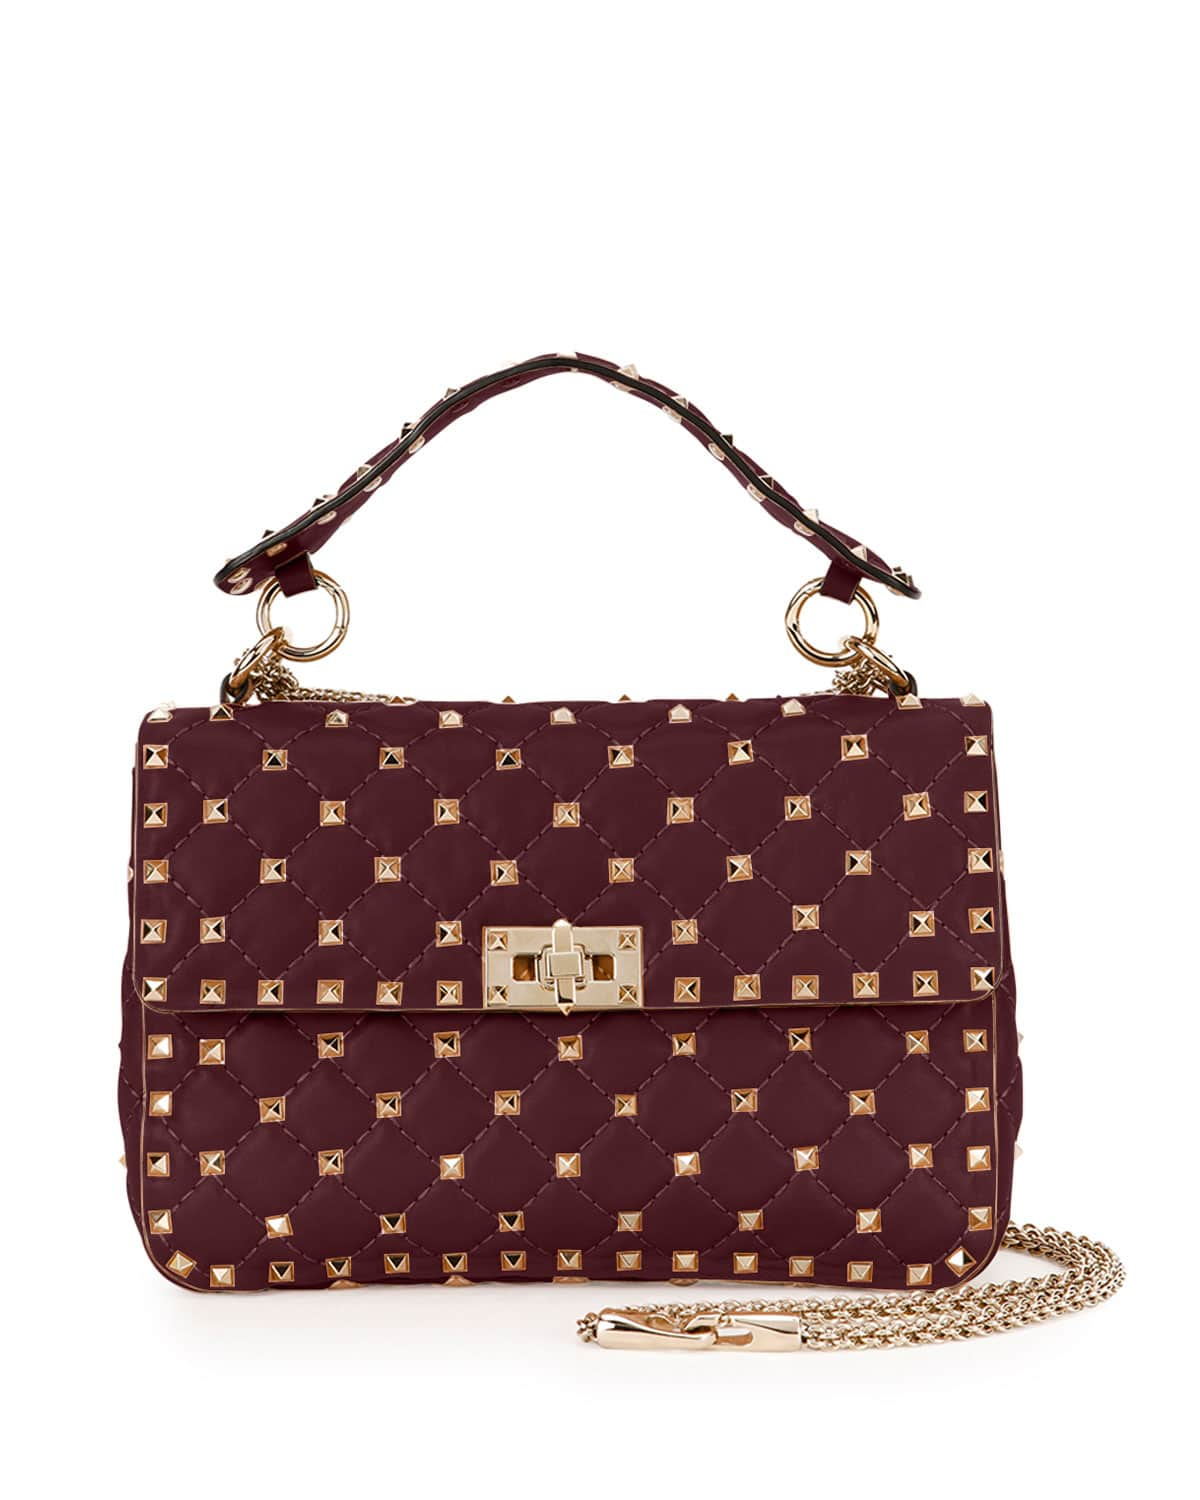 Valentino Fall Winter 2016 Bag Collection Spotted Fashion